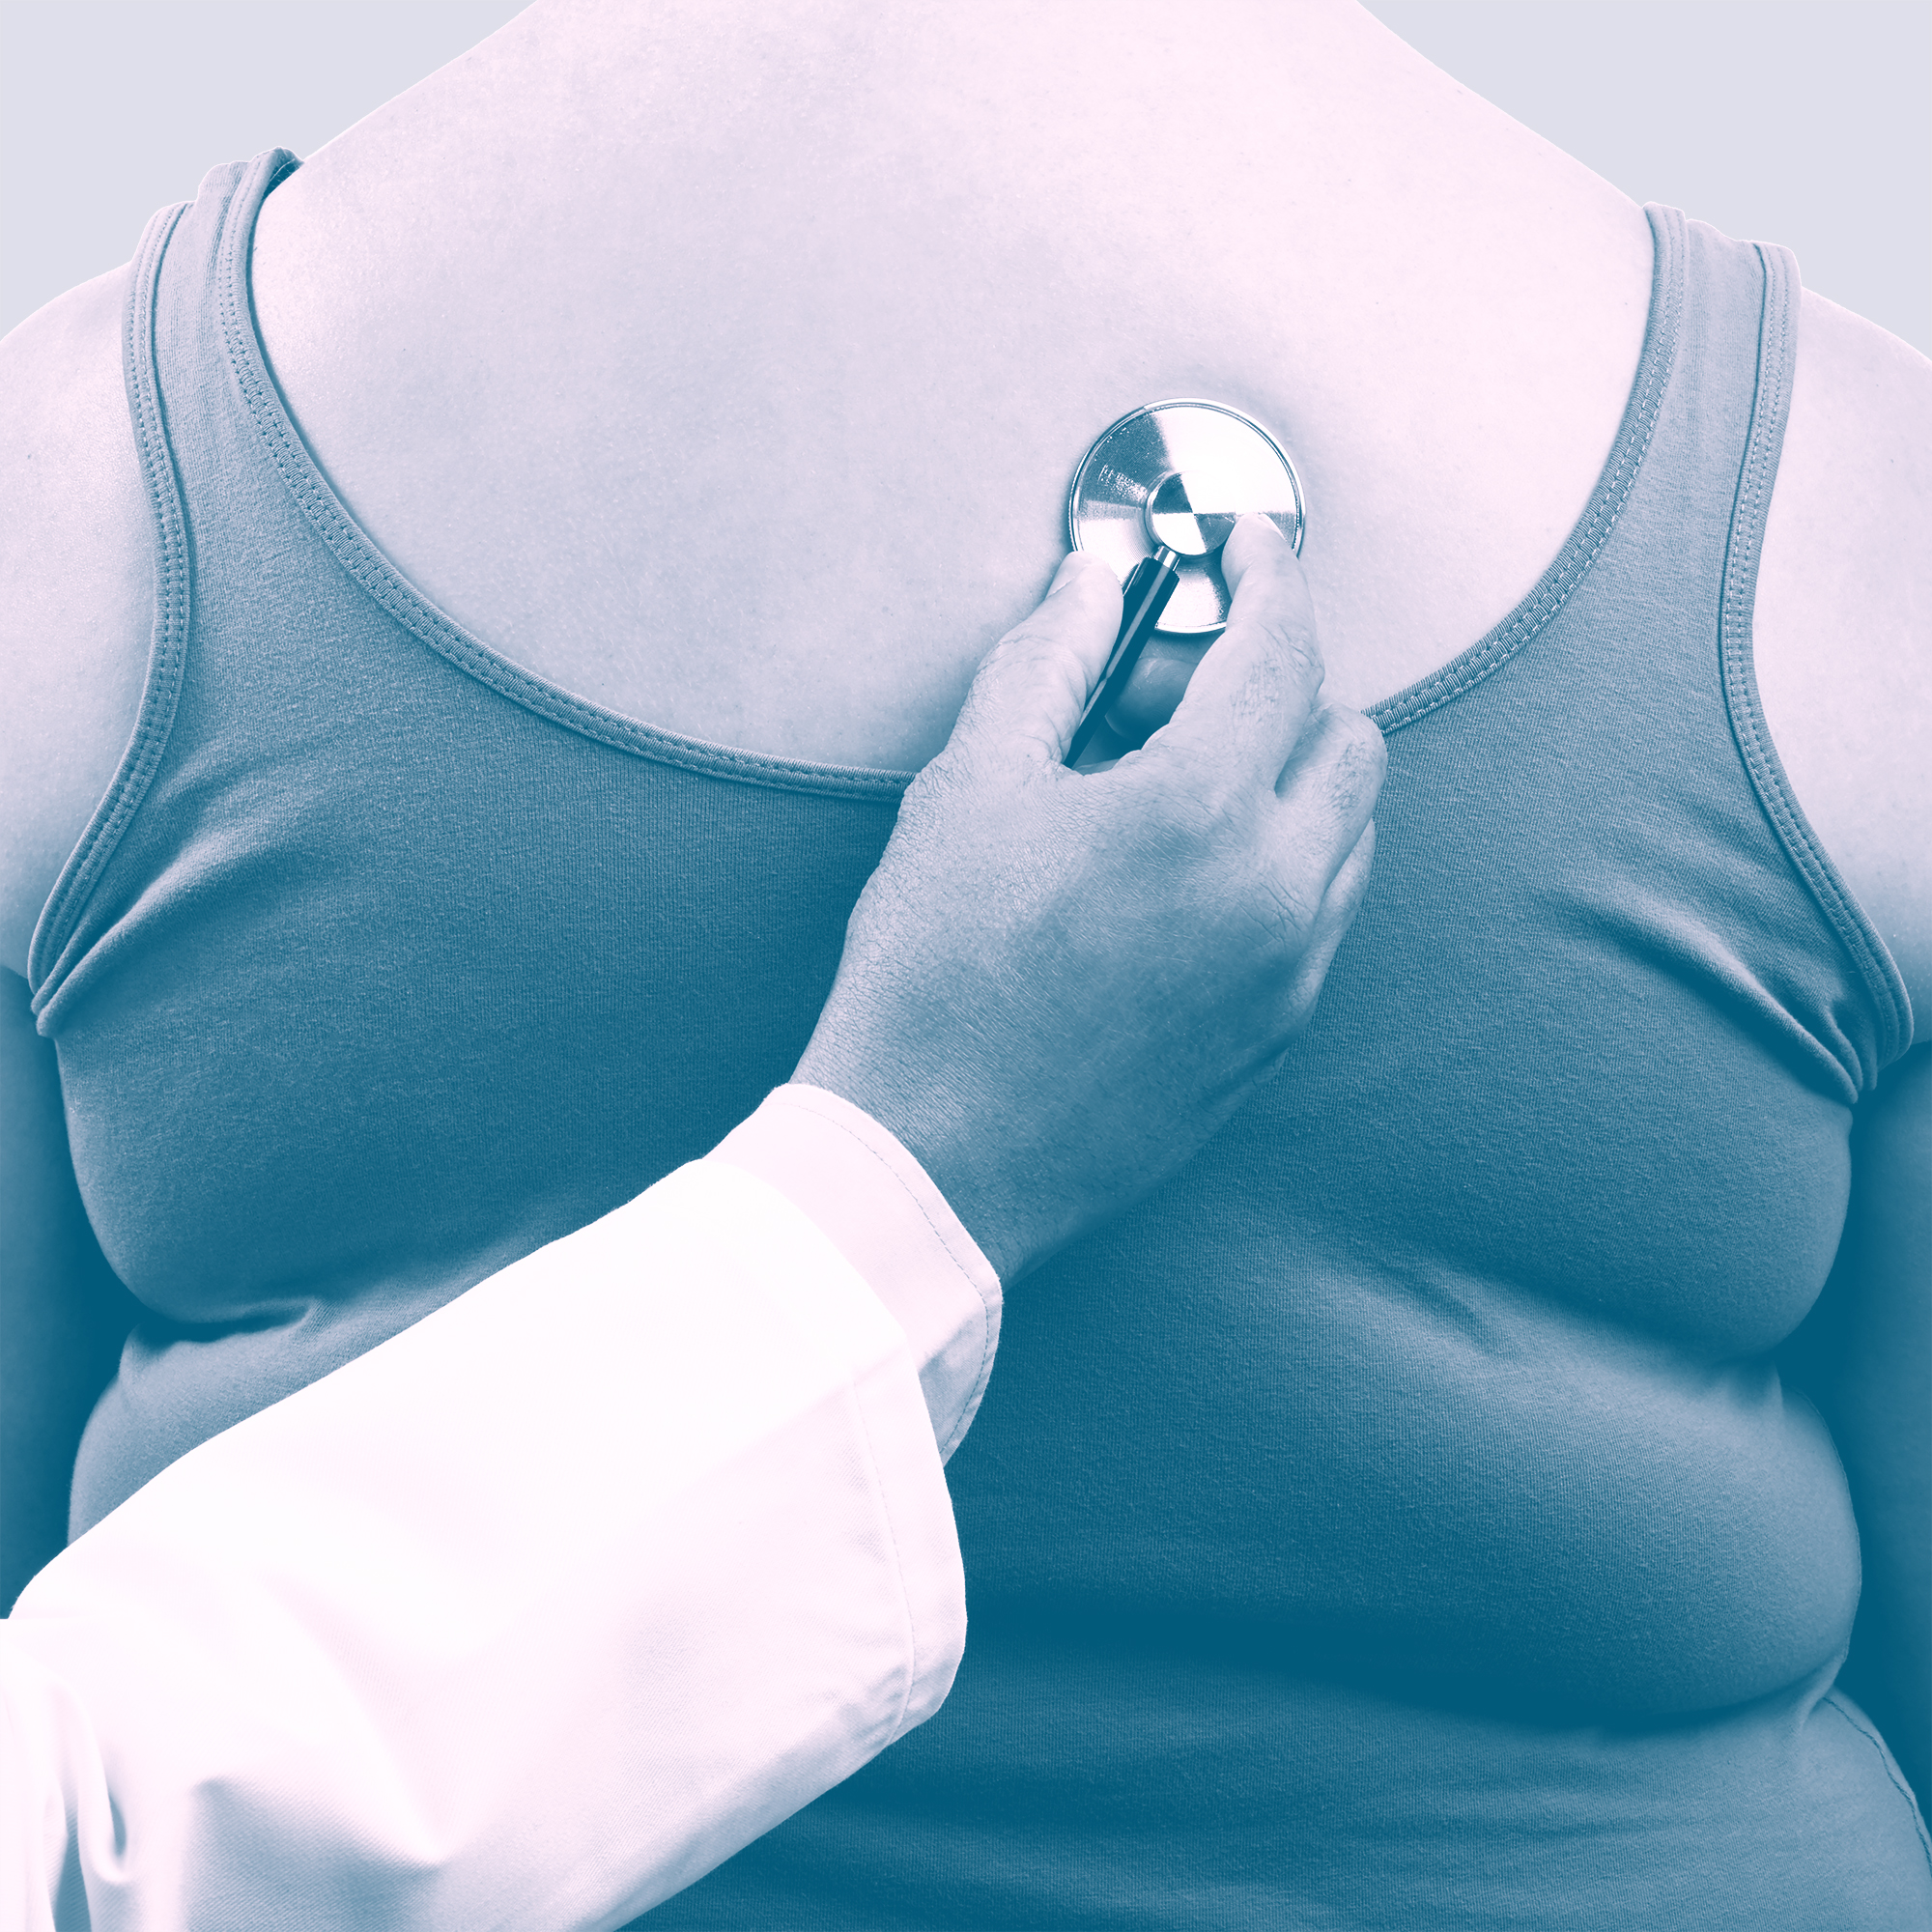 Doctor examining overweight woman